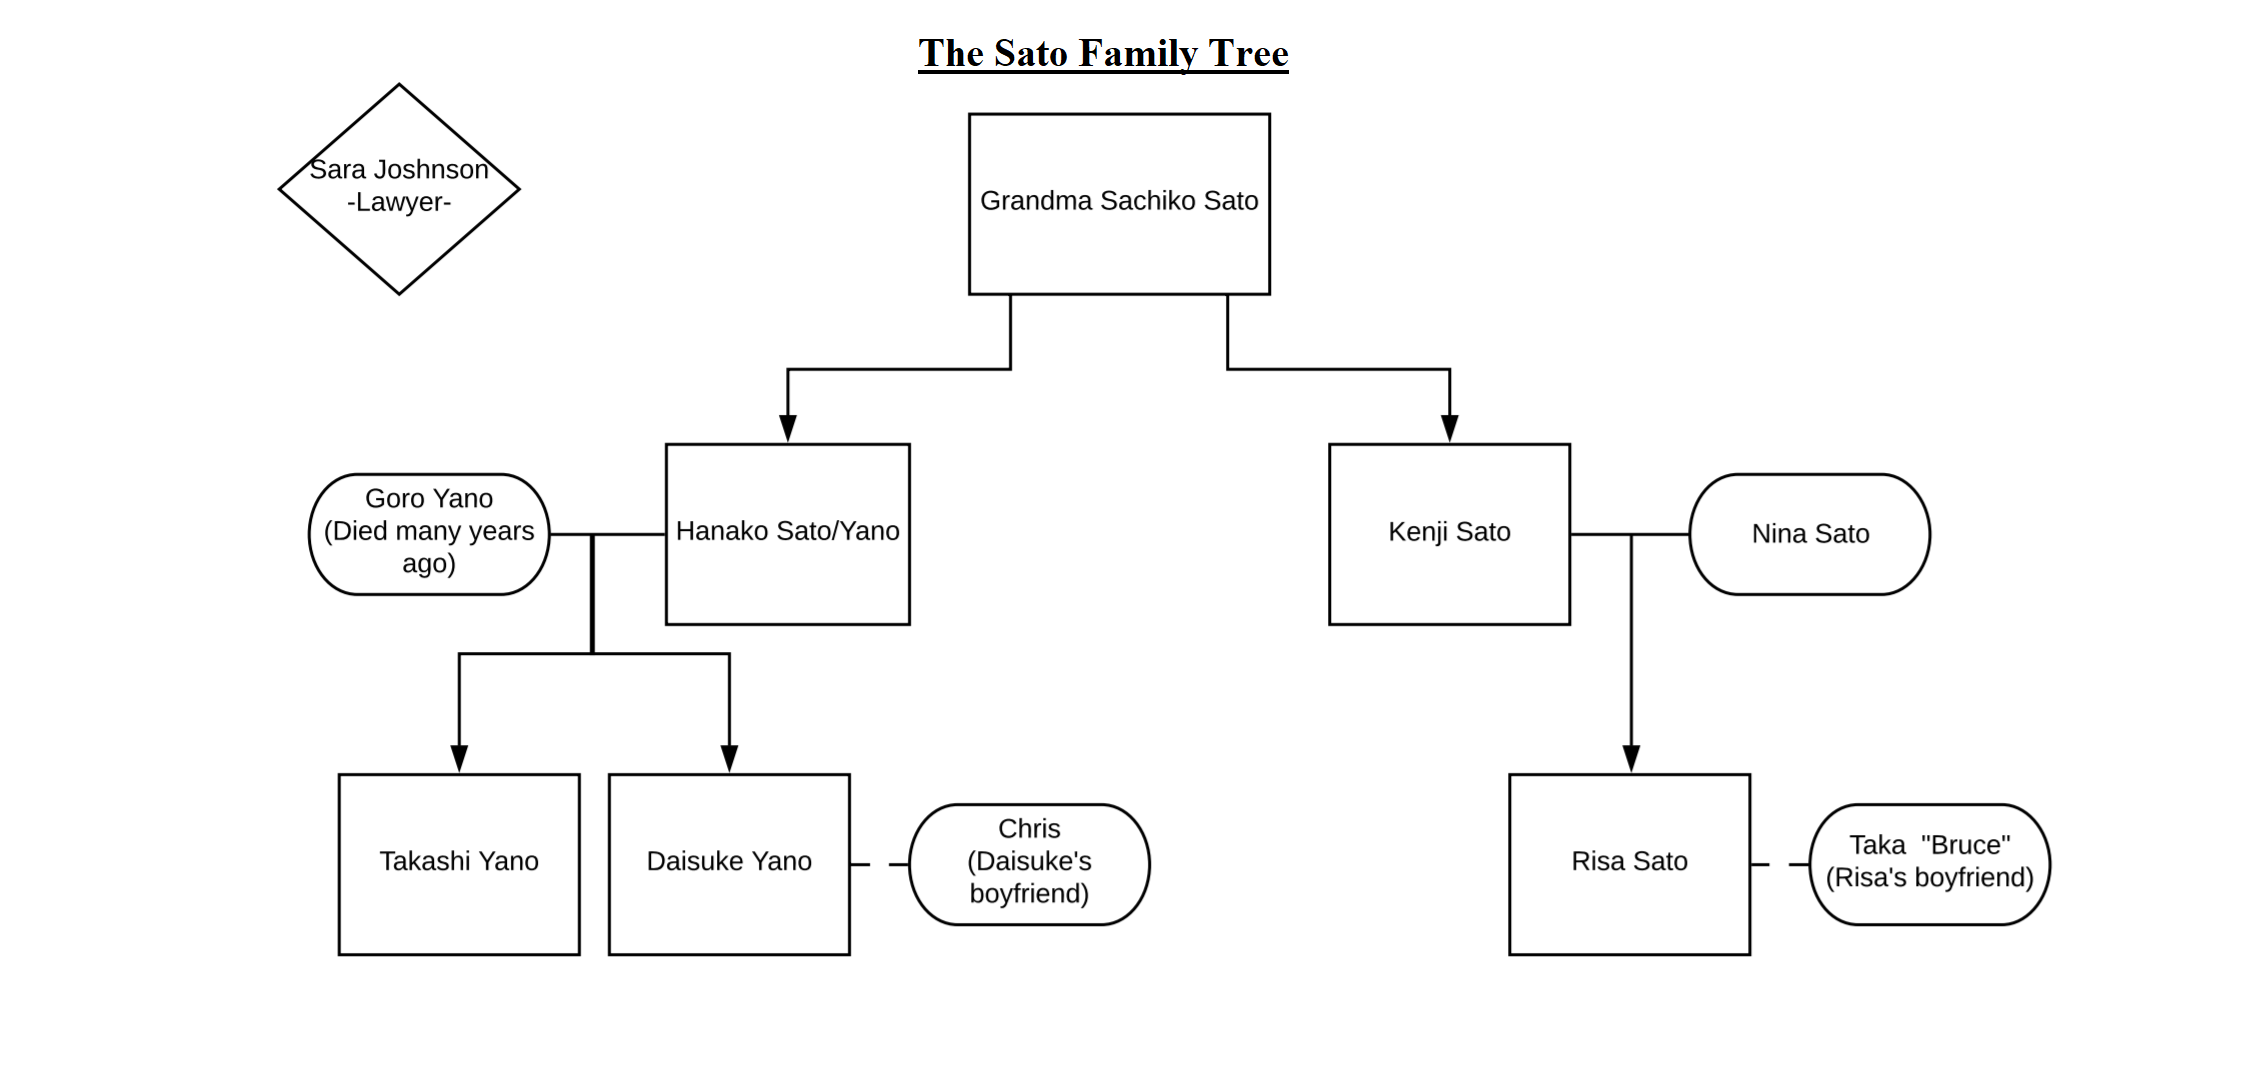 Sato Family Tree.png